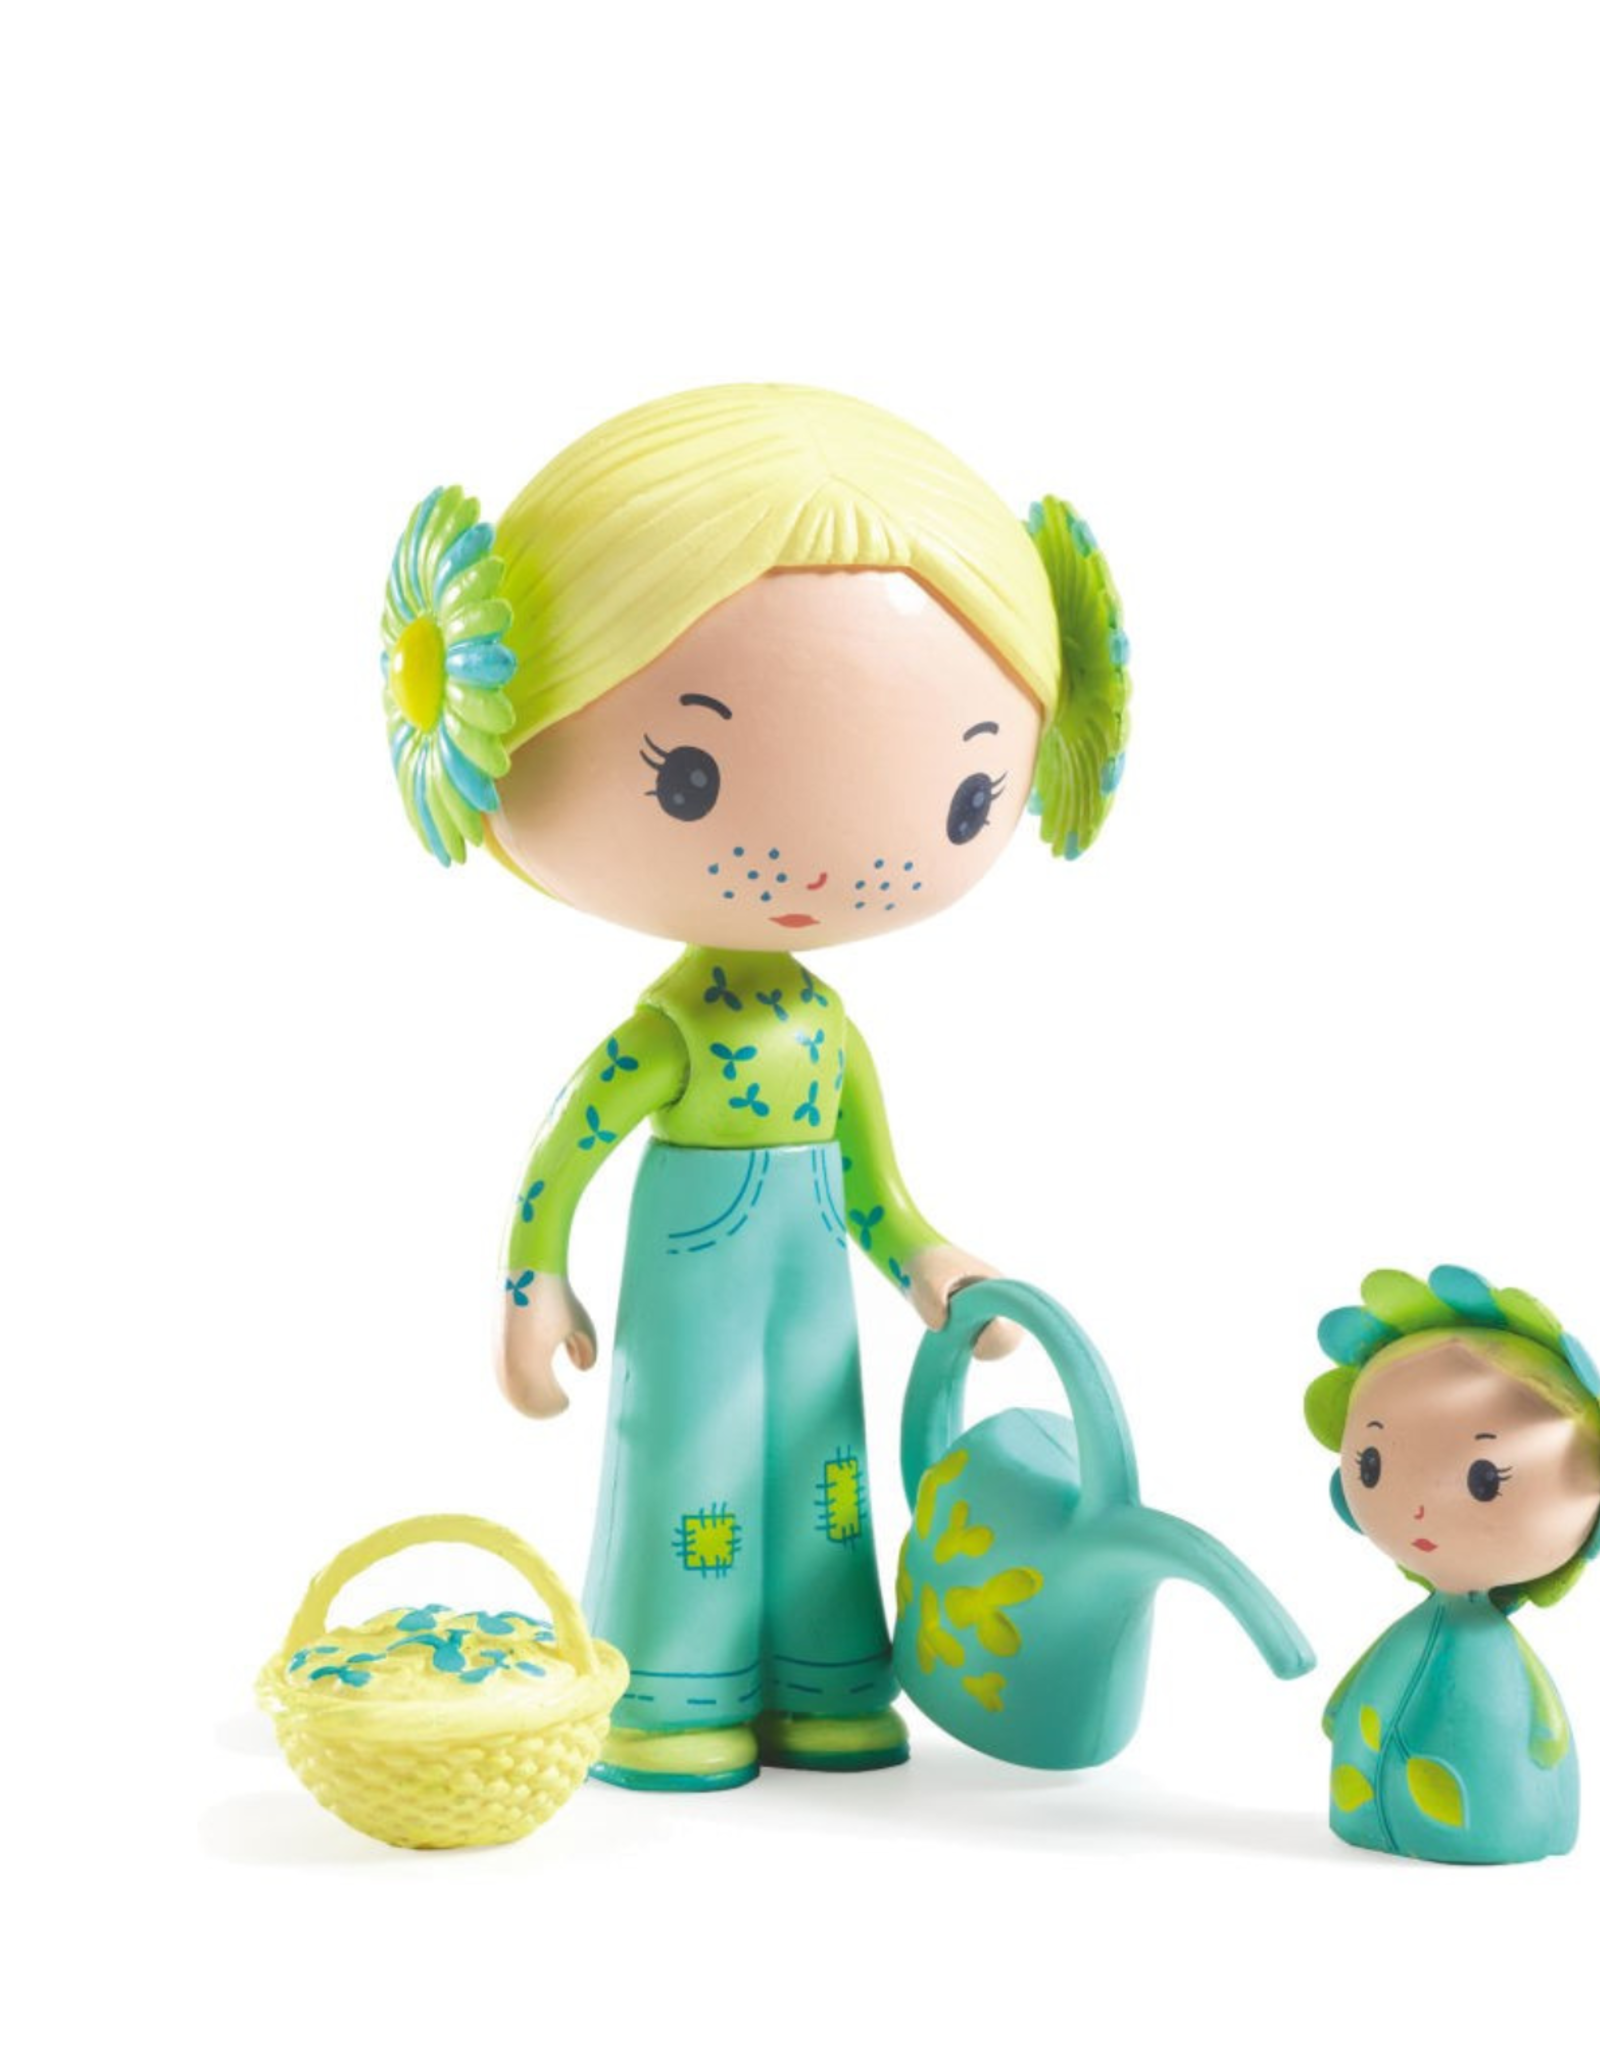 Djeco Flore and Bloom - Tinyly figurines